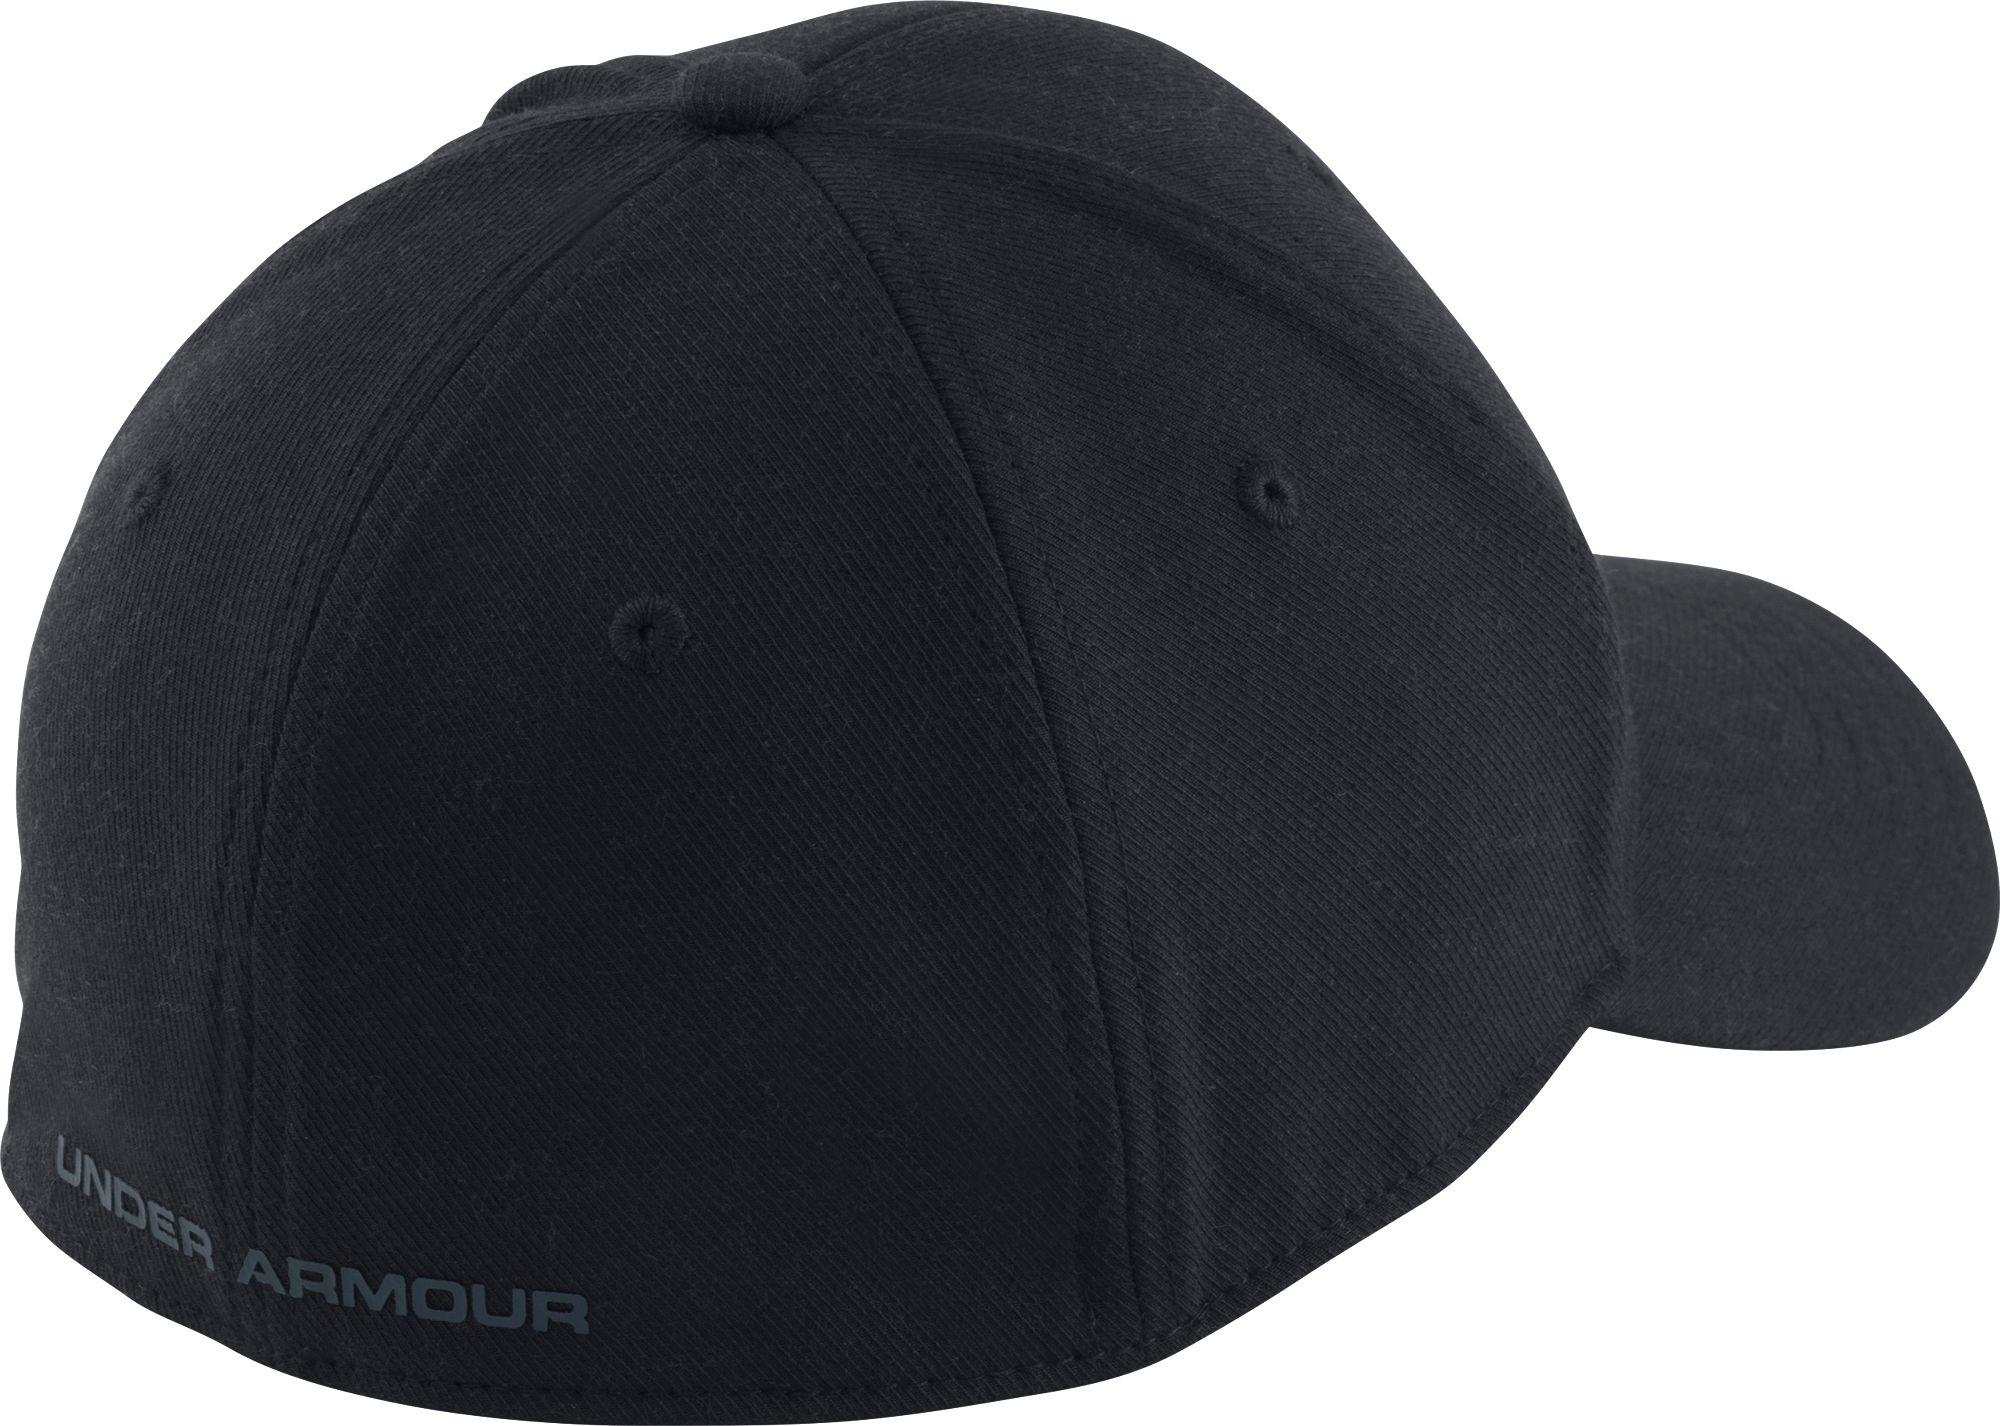 70a7ab3d5a633 ... low price under armour black wool low crown hat for men lyst. view  fullscreen 8ed20